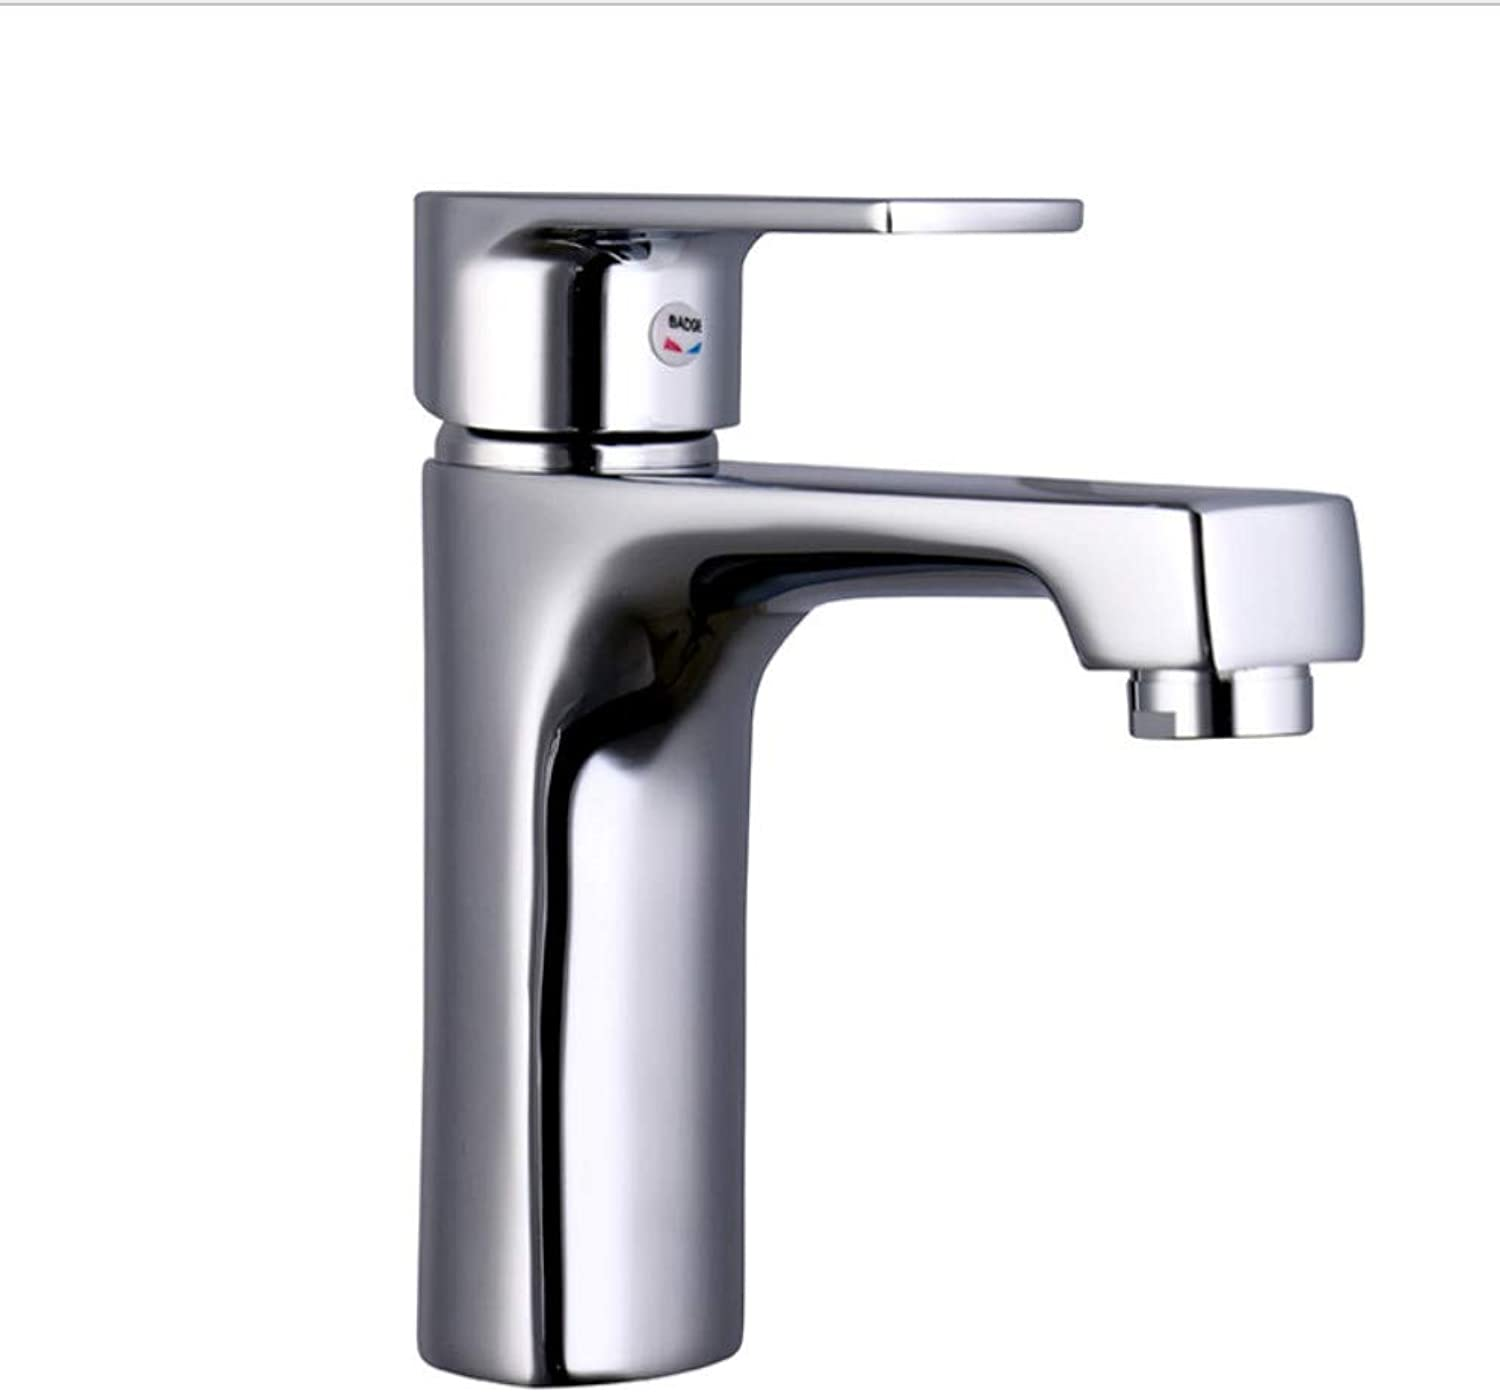 Kitchen Sink Taps Bathroom Sink Taps Single Hole Diamond Basin Faucet Wholesale Direct Sales Bathroom Bathroom Copper Basin Faucet